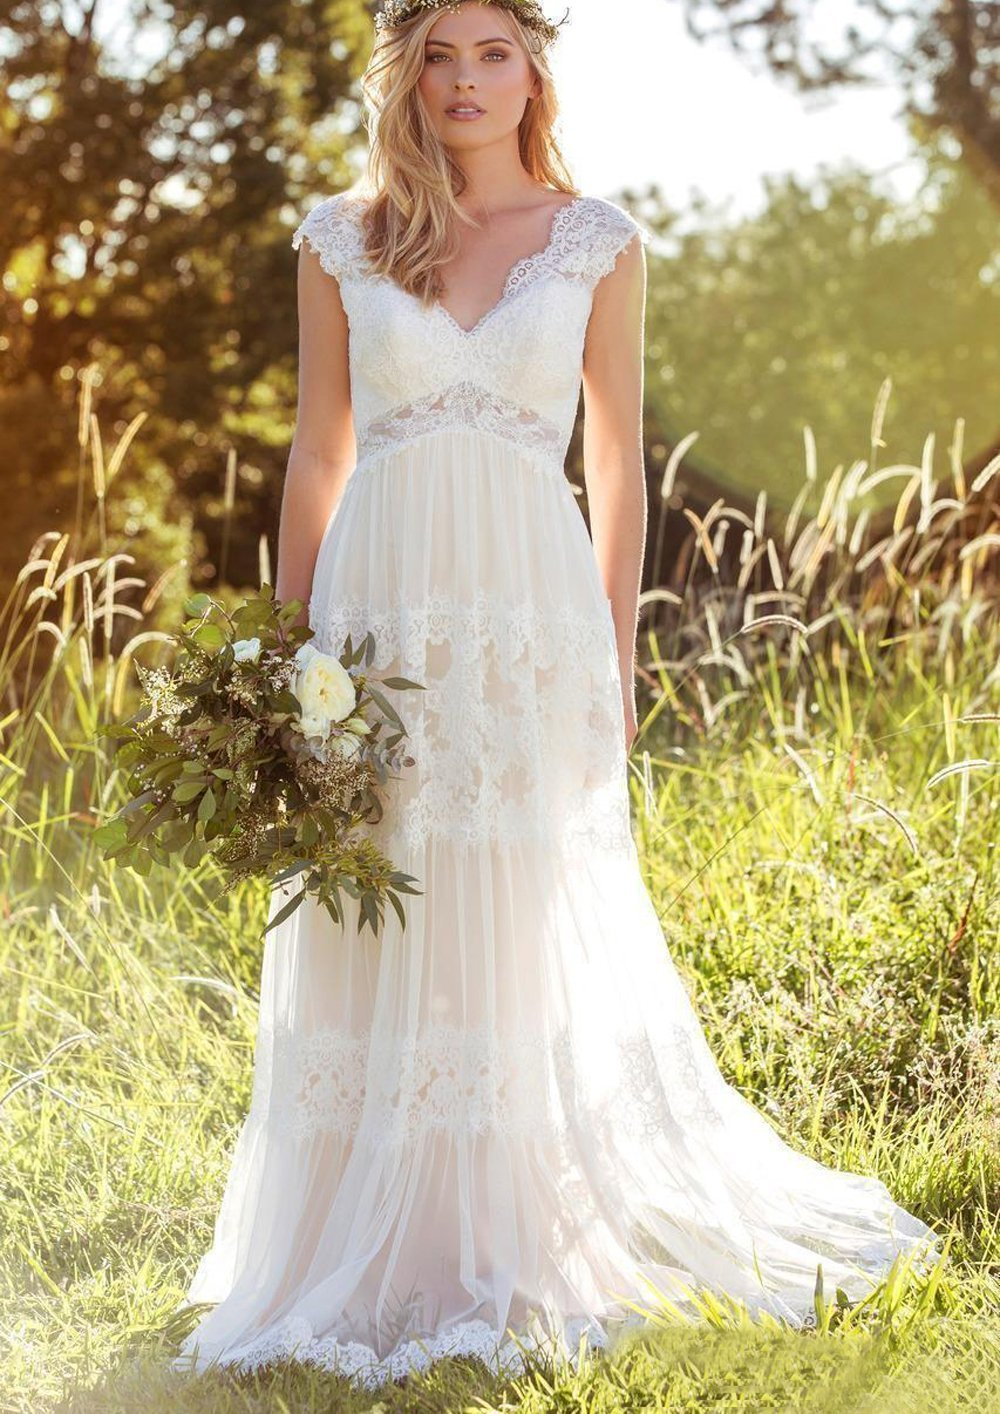 Butalways Lace Wedding Dresses Long Boho Bohemian Wedding Gowns Bridal Dresses Low Back 2018 As Pictures 17w